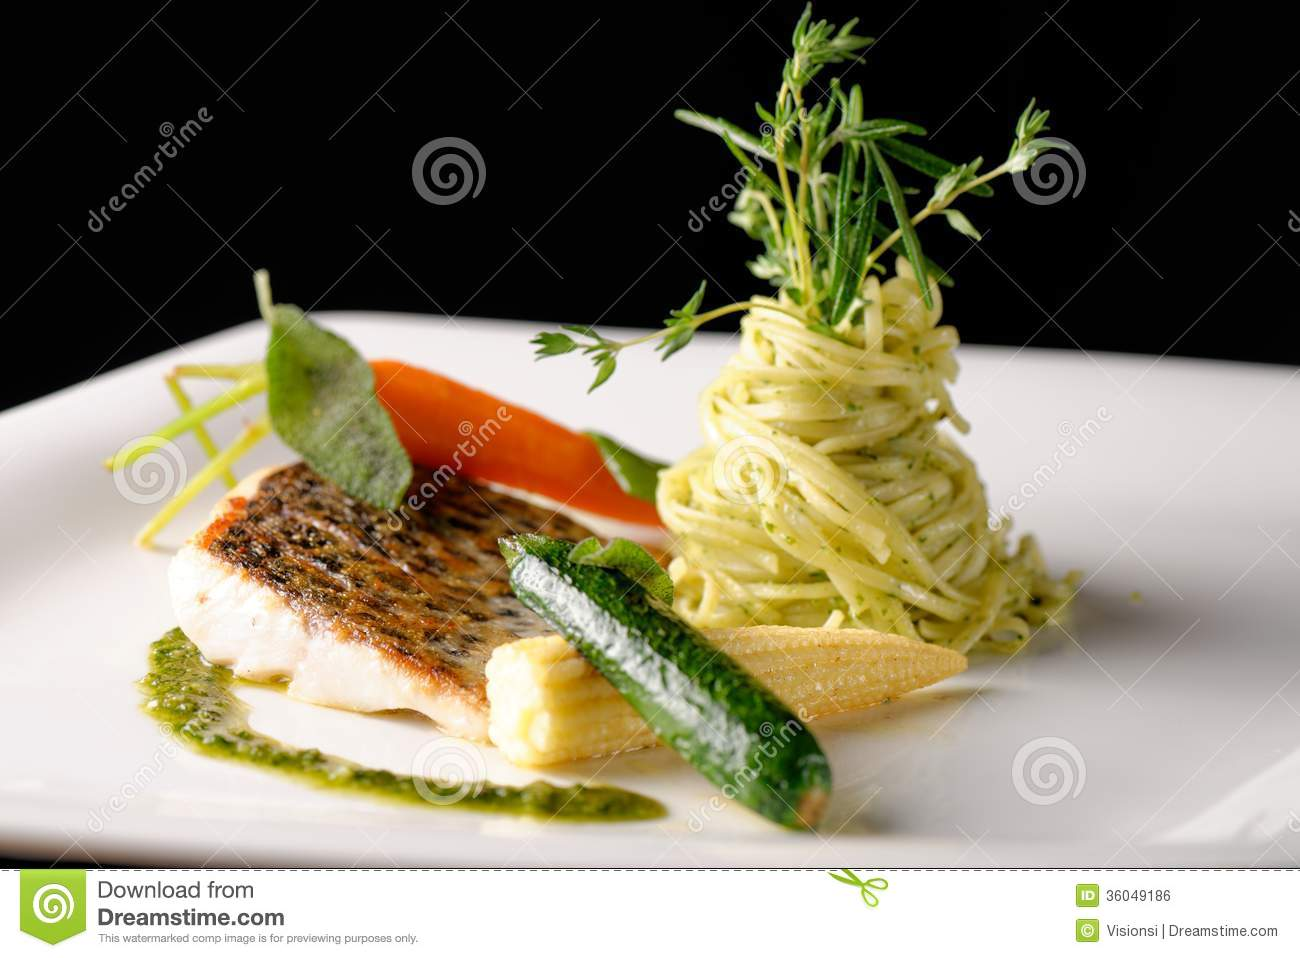 Fine Dining, Fish Fillet Royalty Free Stock Image - Image: 36049186